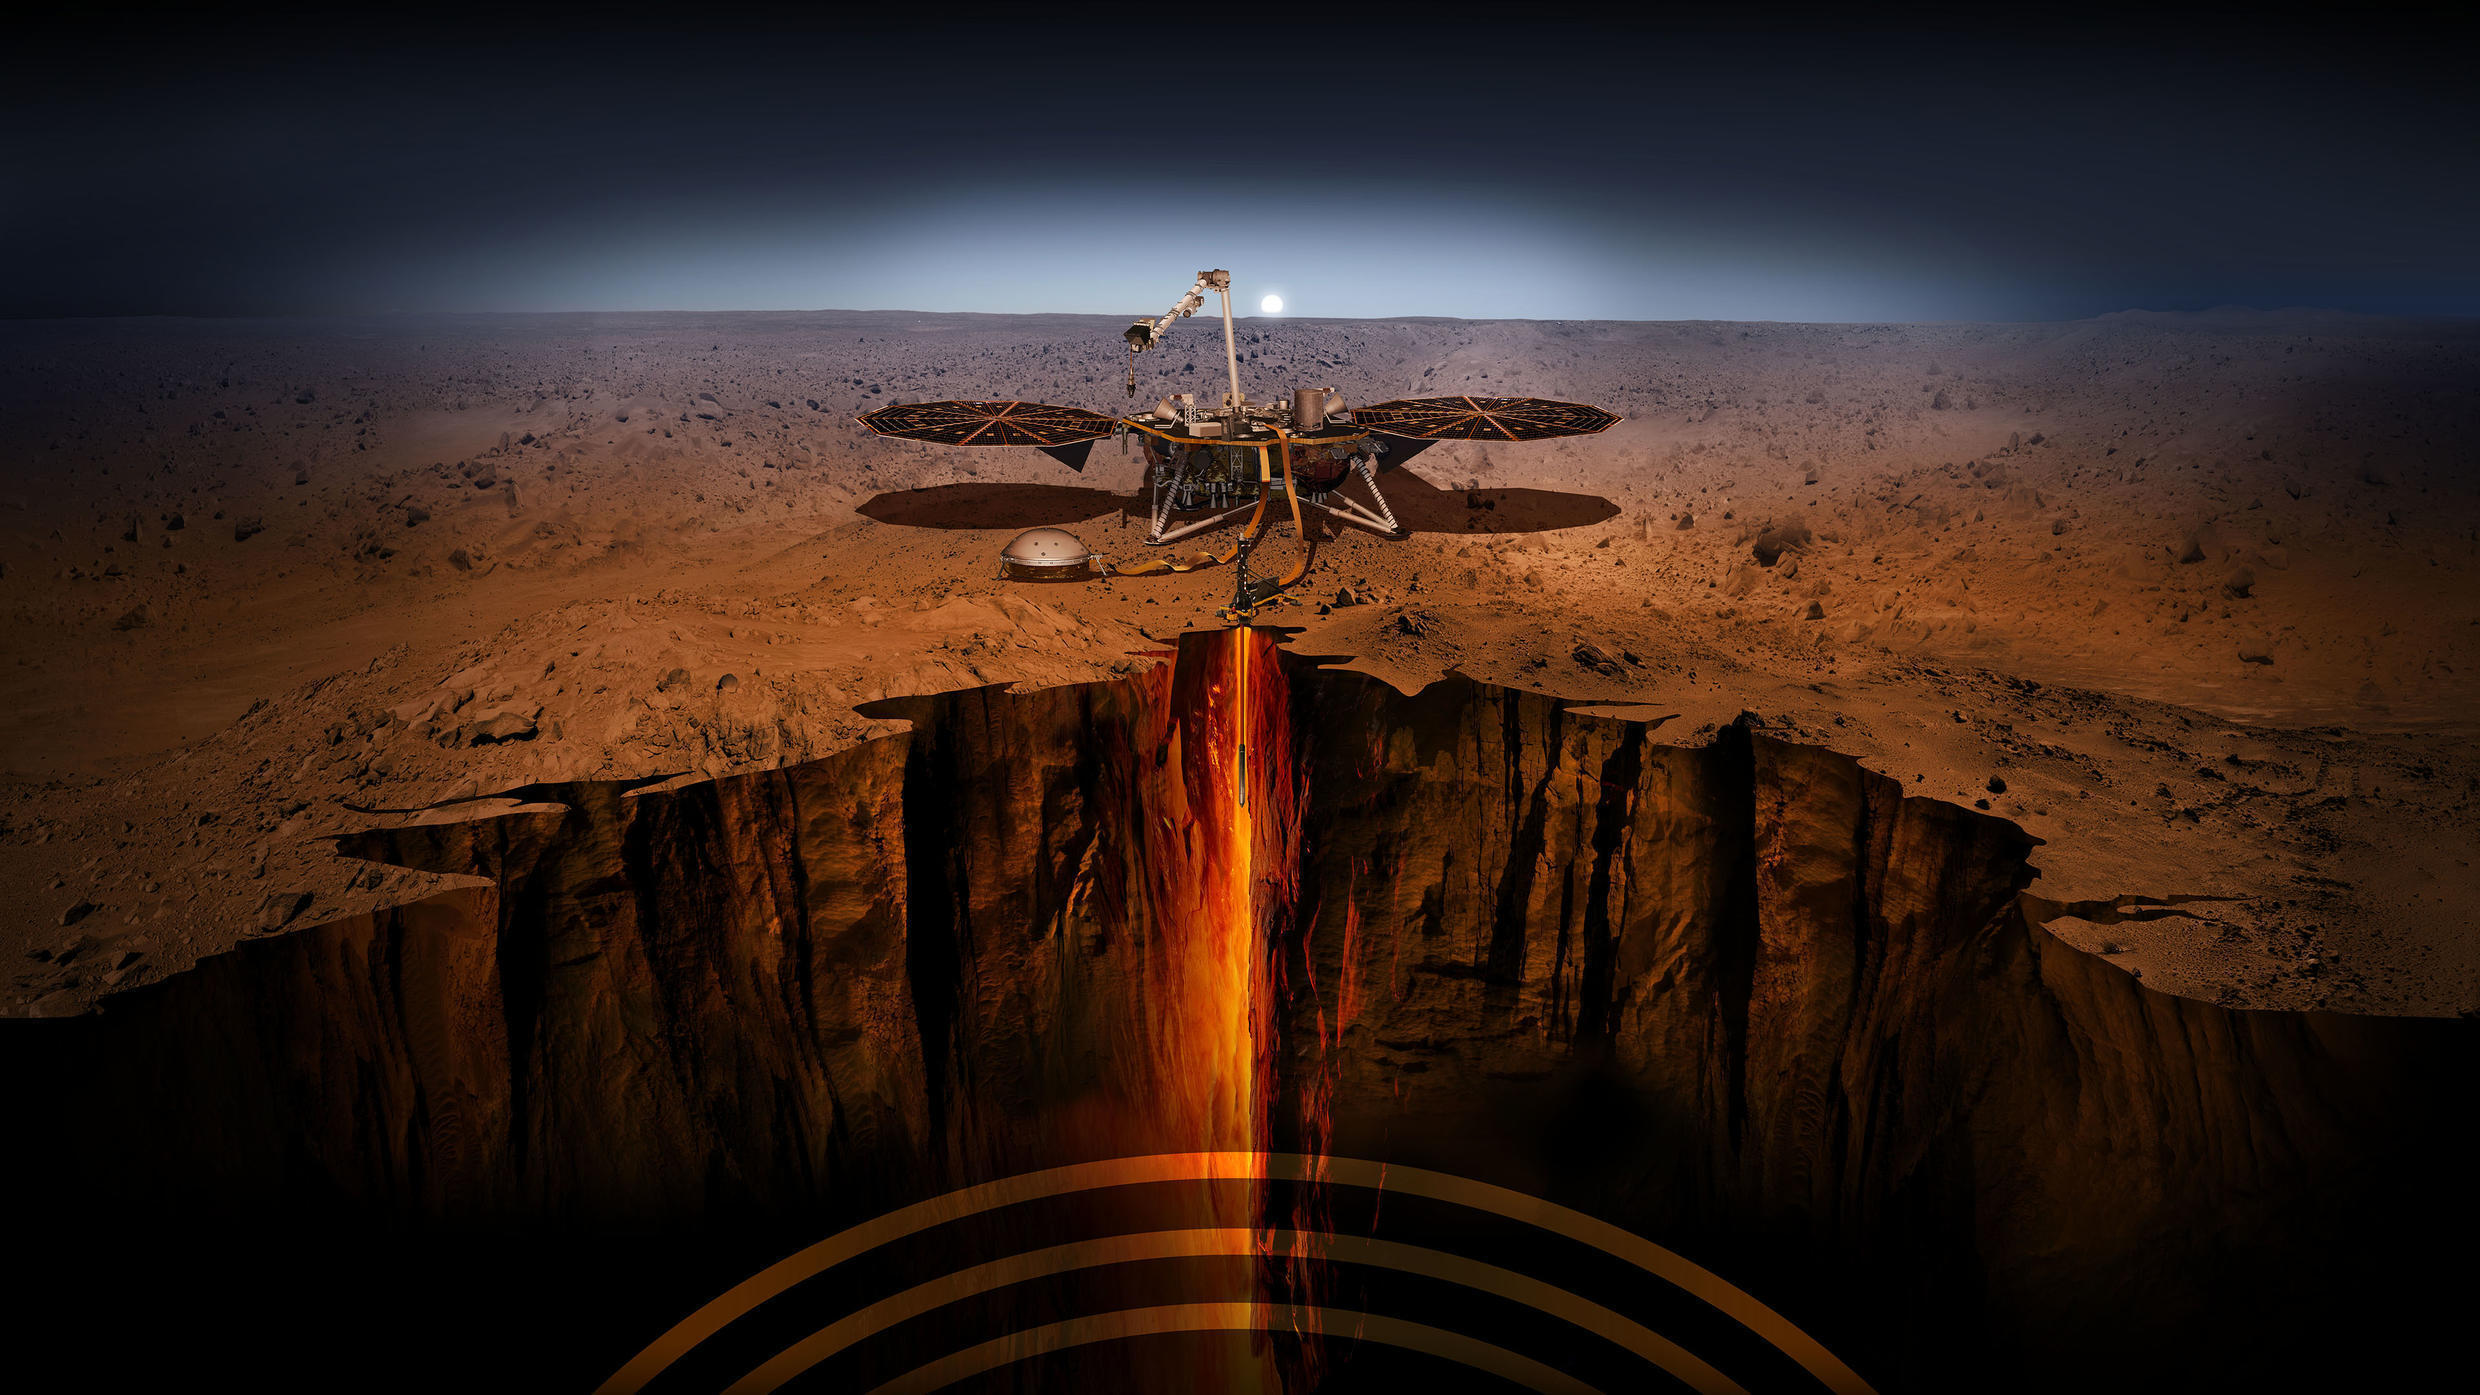 The InSight probe will use three instruments, including a seismometer developed in France, to study the interior of the planet Mars.